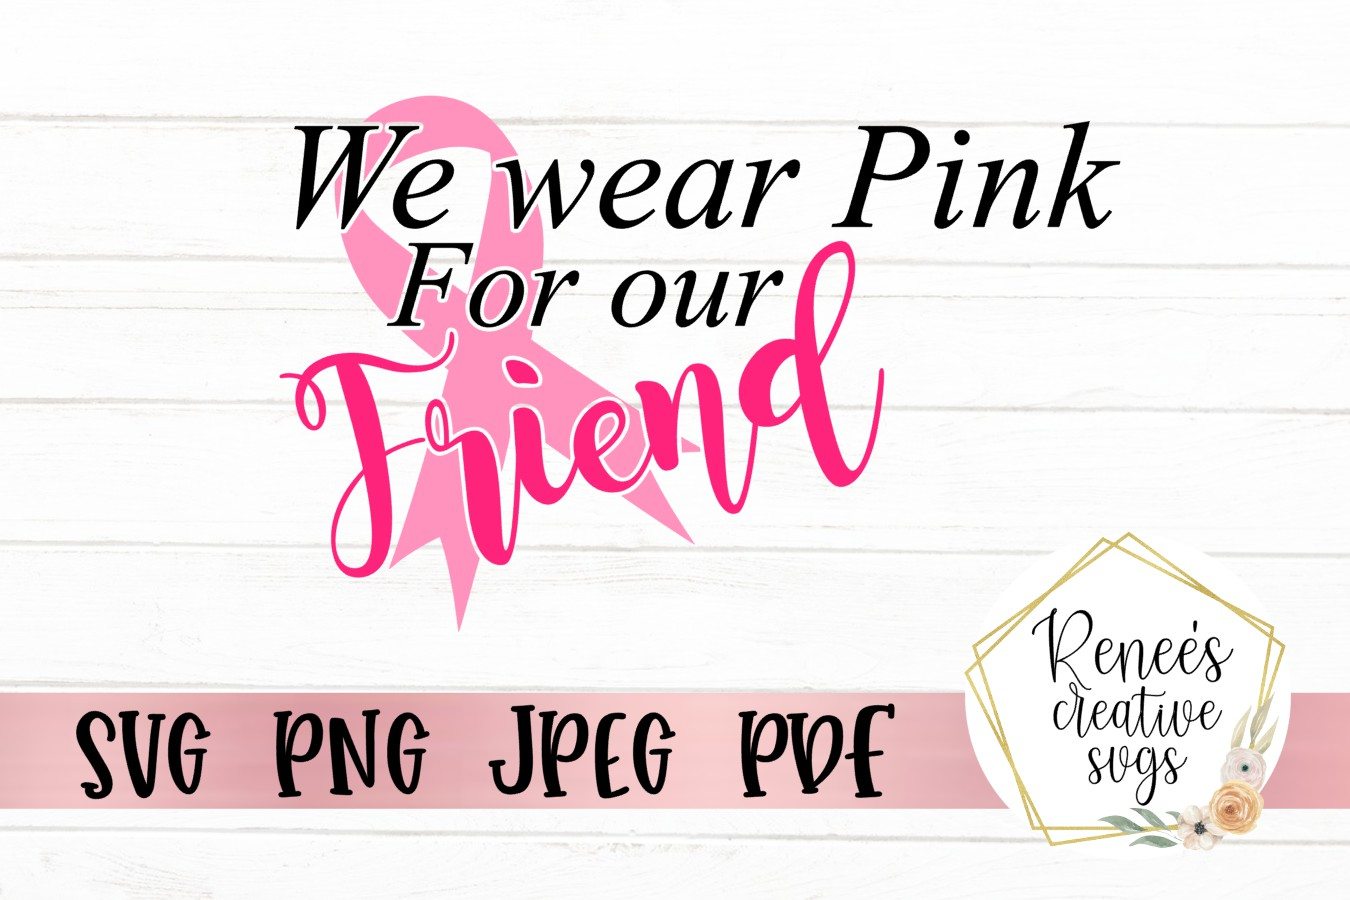 Download Free We Wear Pink For Our Friend Graphic By Reneescreativesvgs for Cricut Explore, Silhouette and other cutting machines.